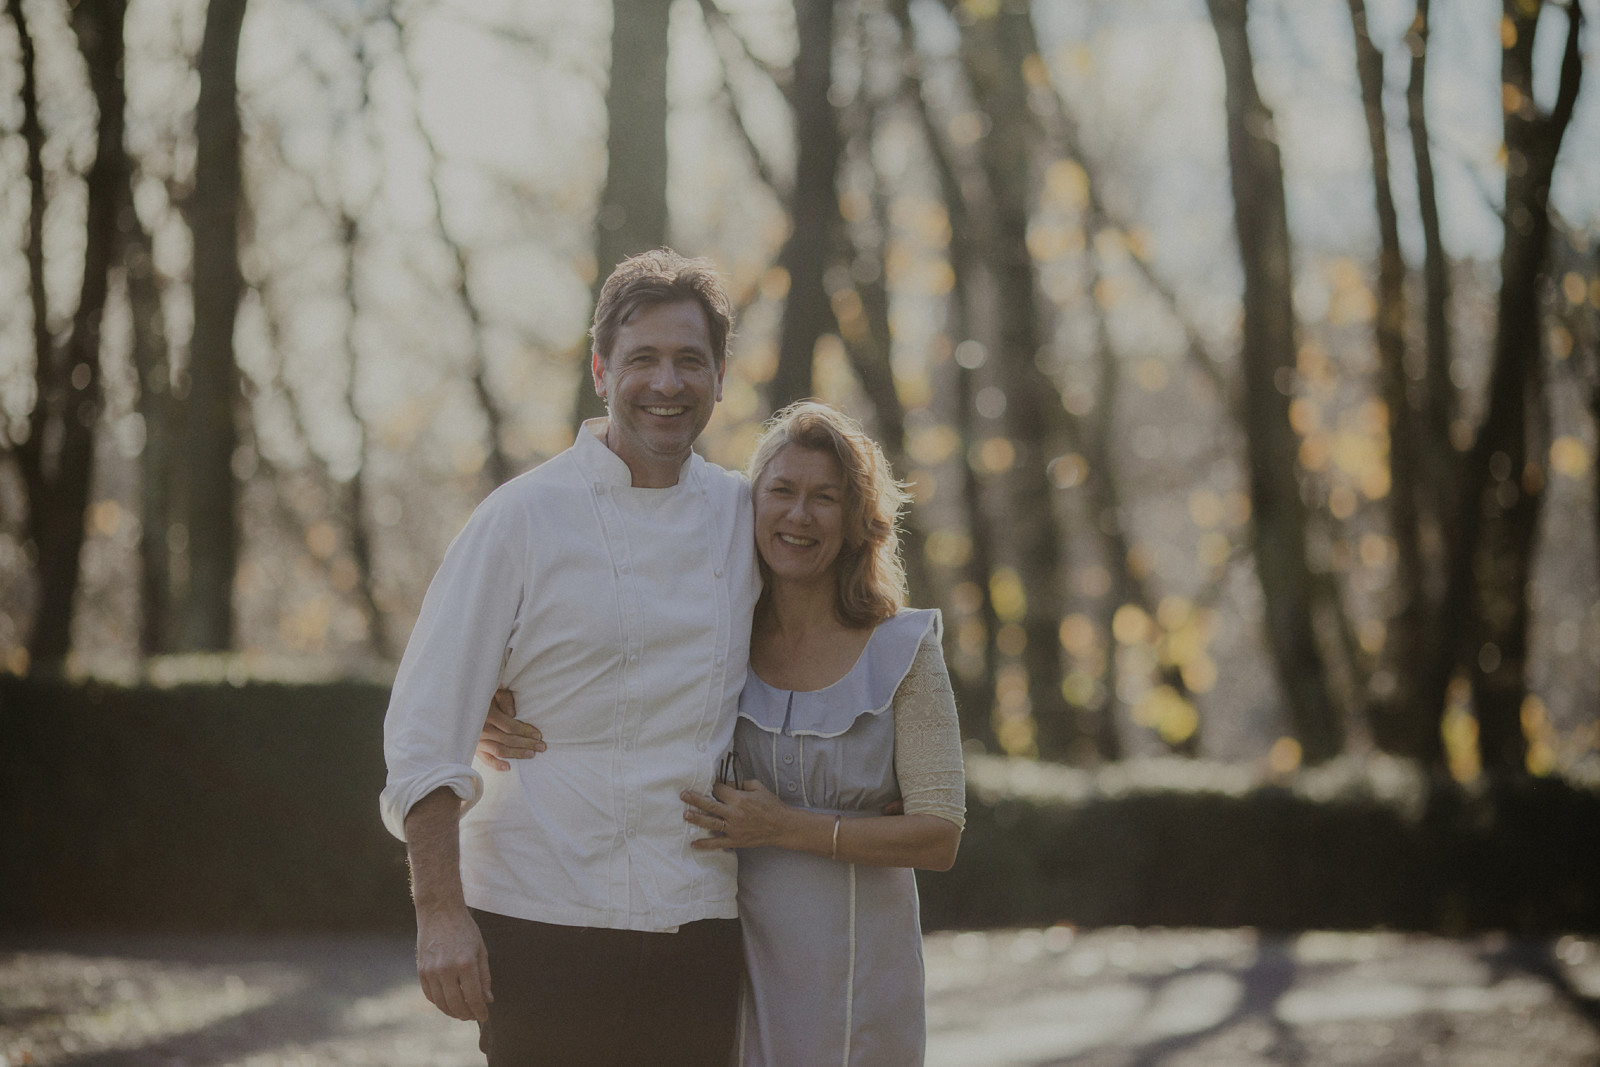 Chirs Stockdale and Jeanette Woerner - the talent behind Wallingford Kitchen